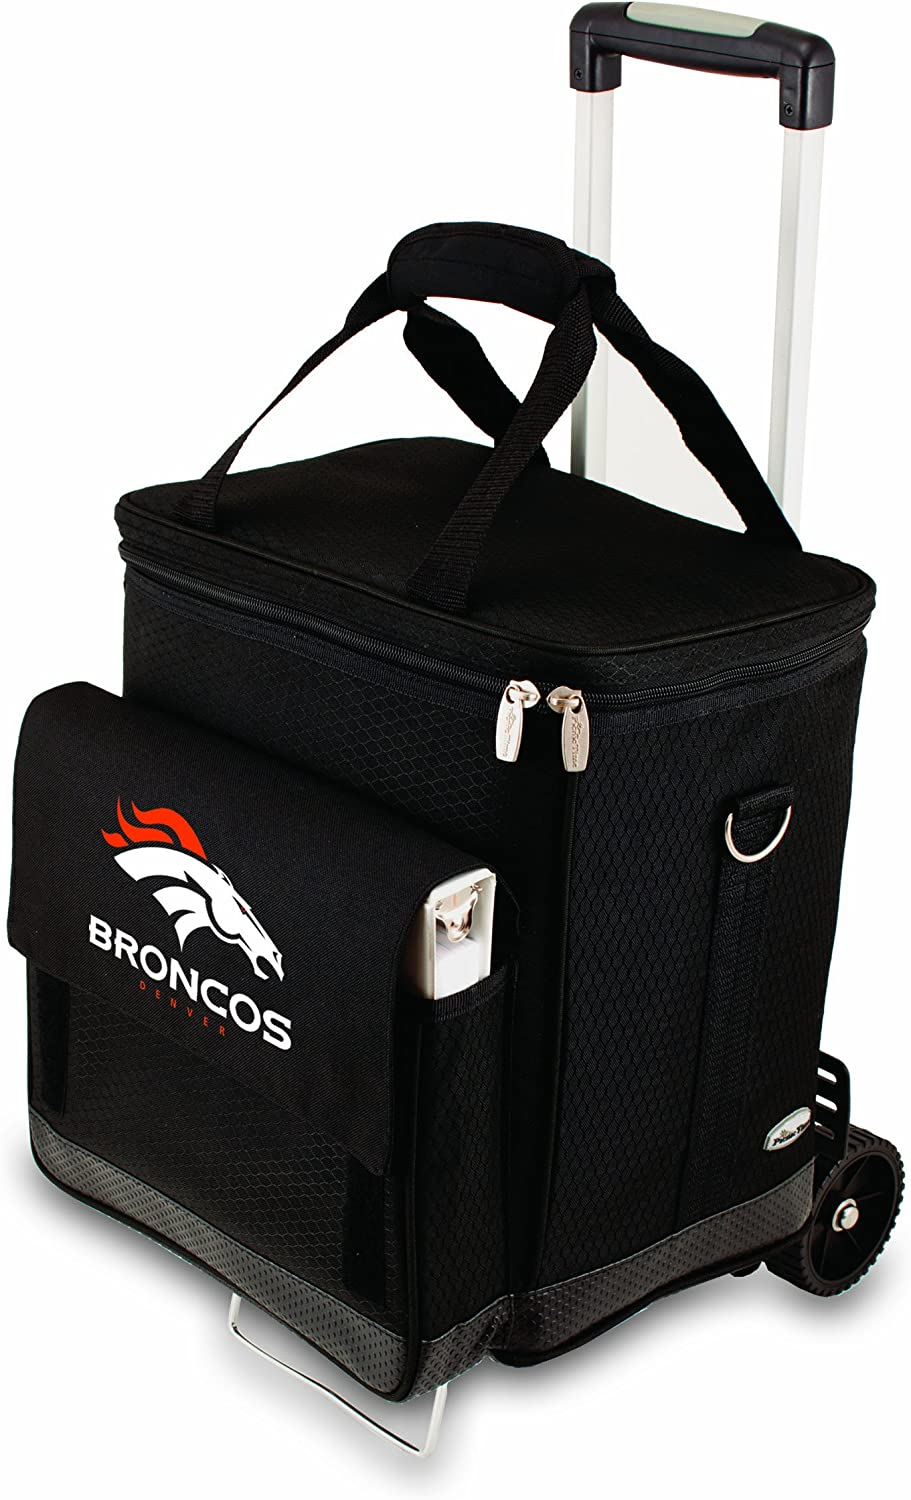 NFL Denver Broncos Insulated Cellar Six Bottle Wine Tote with Trolley